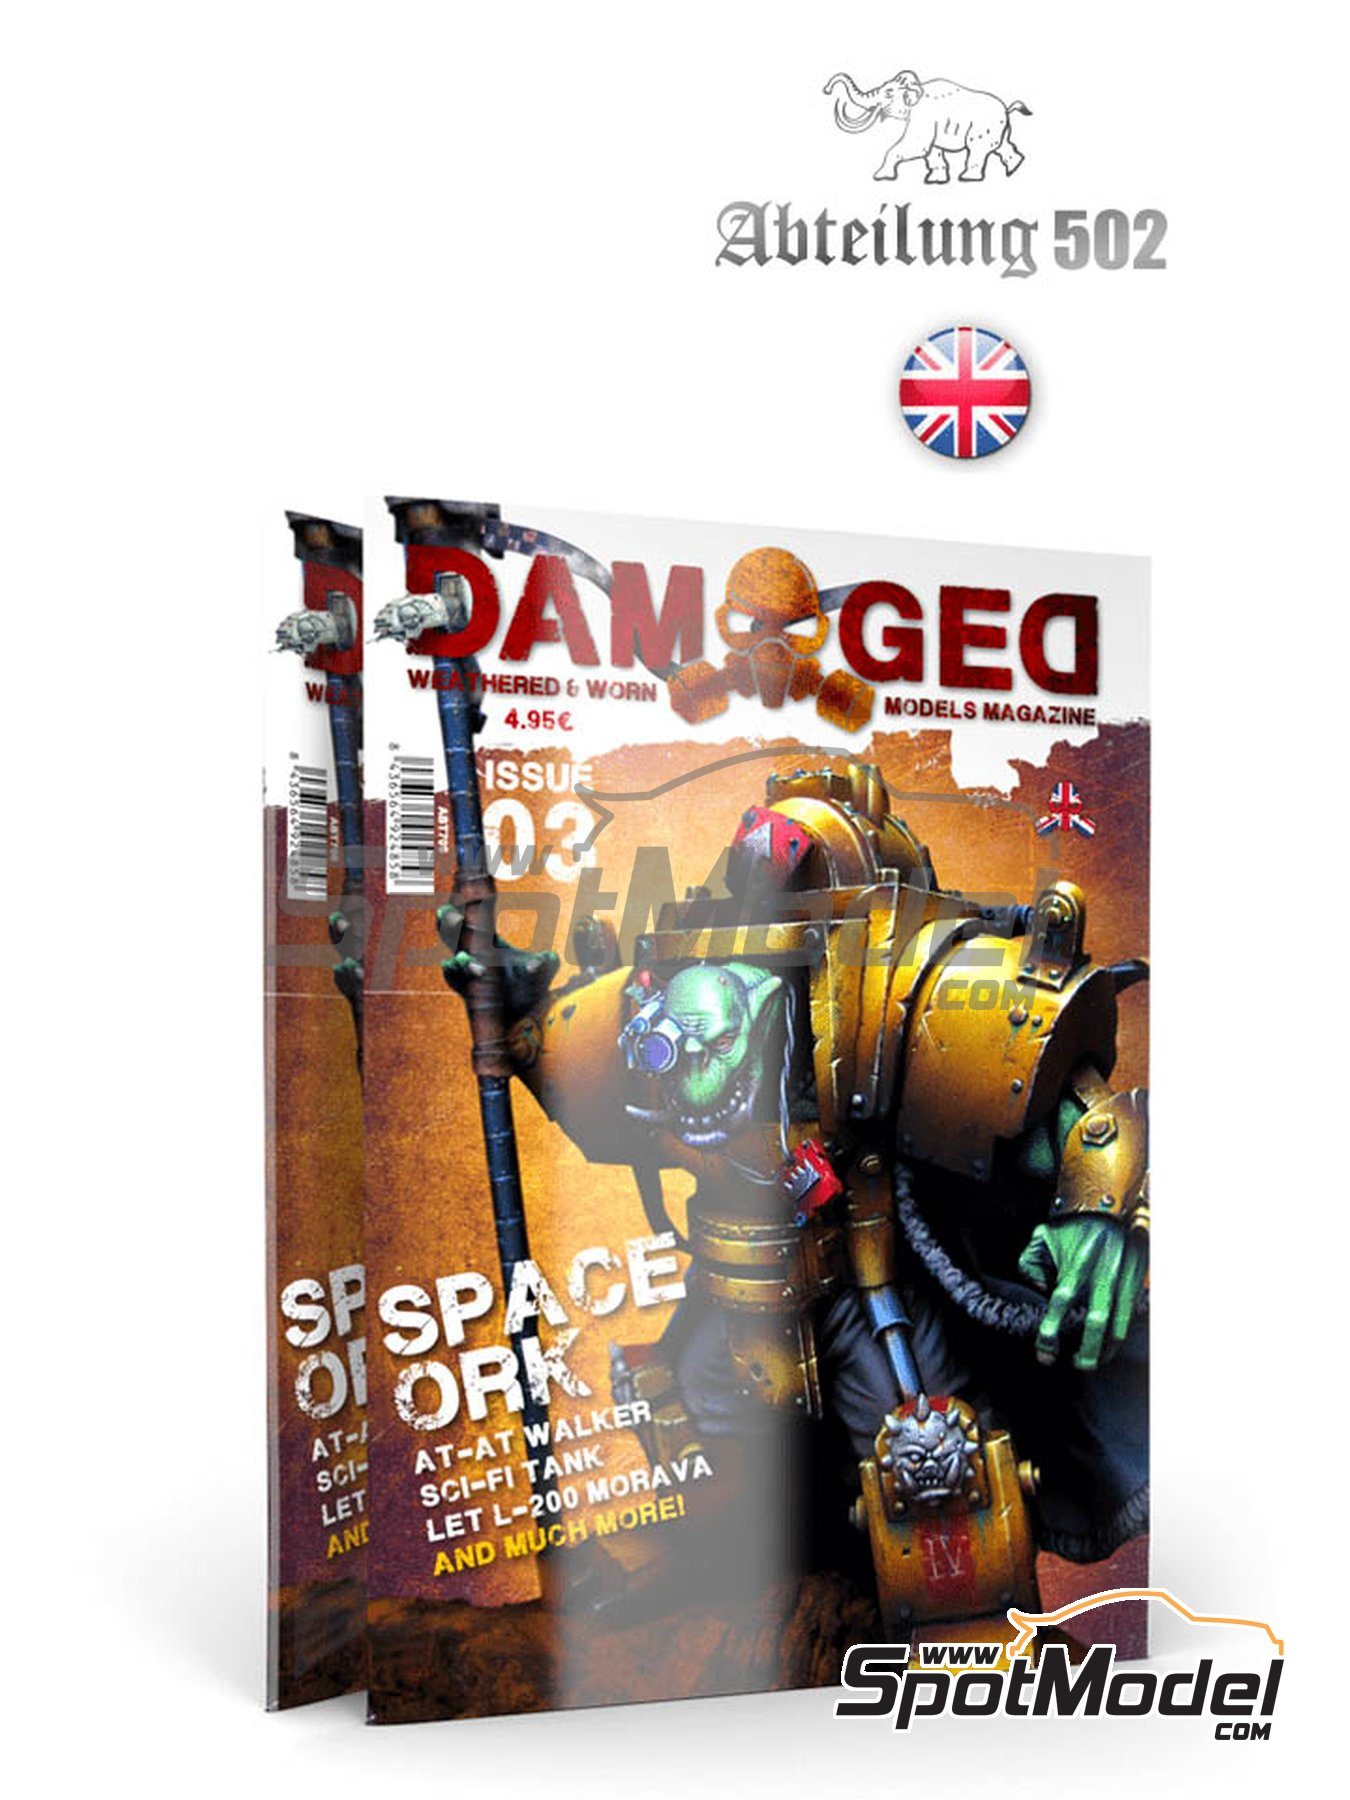 Damaged - Weathered and worn: Number 3 - english edition | Magazine manufactured by AK Interactive (ref. ABT705) image